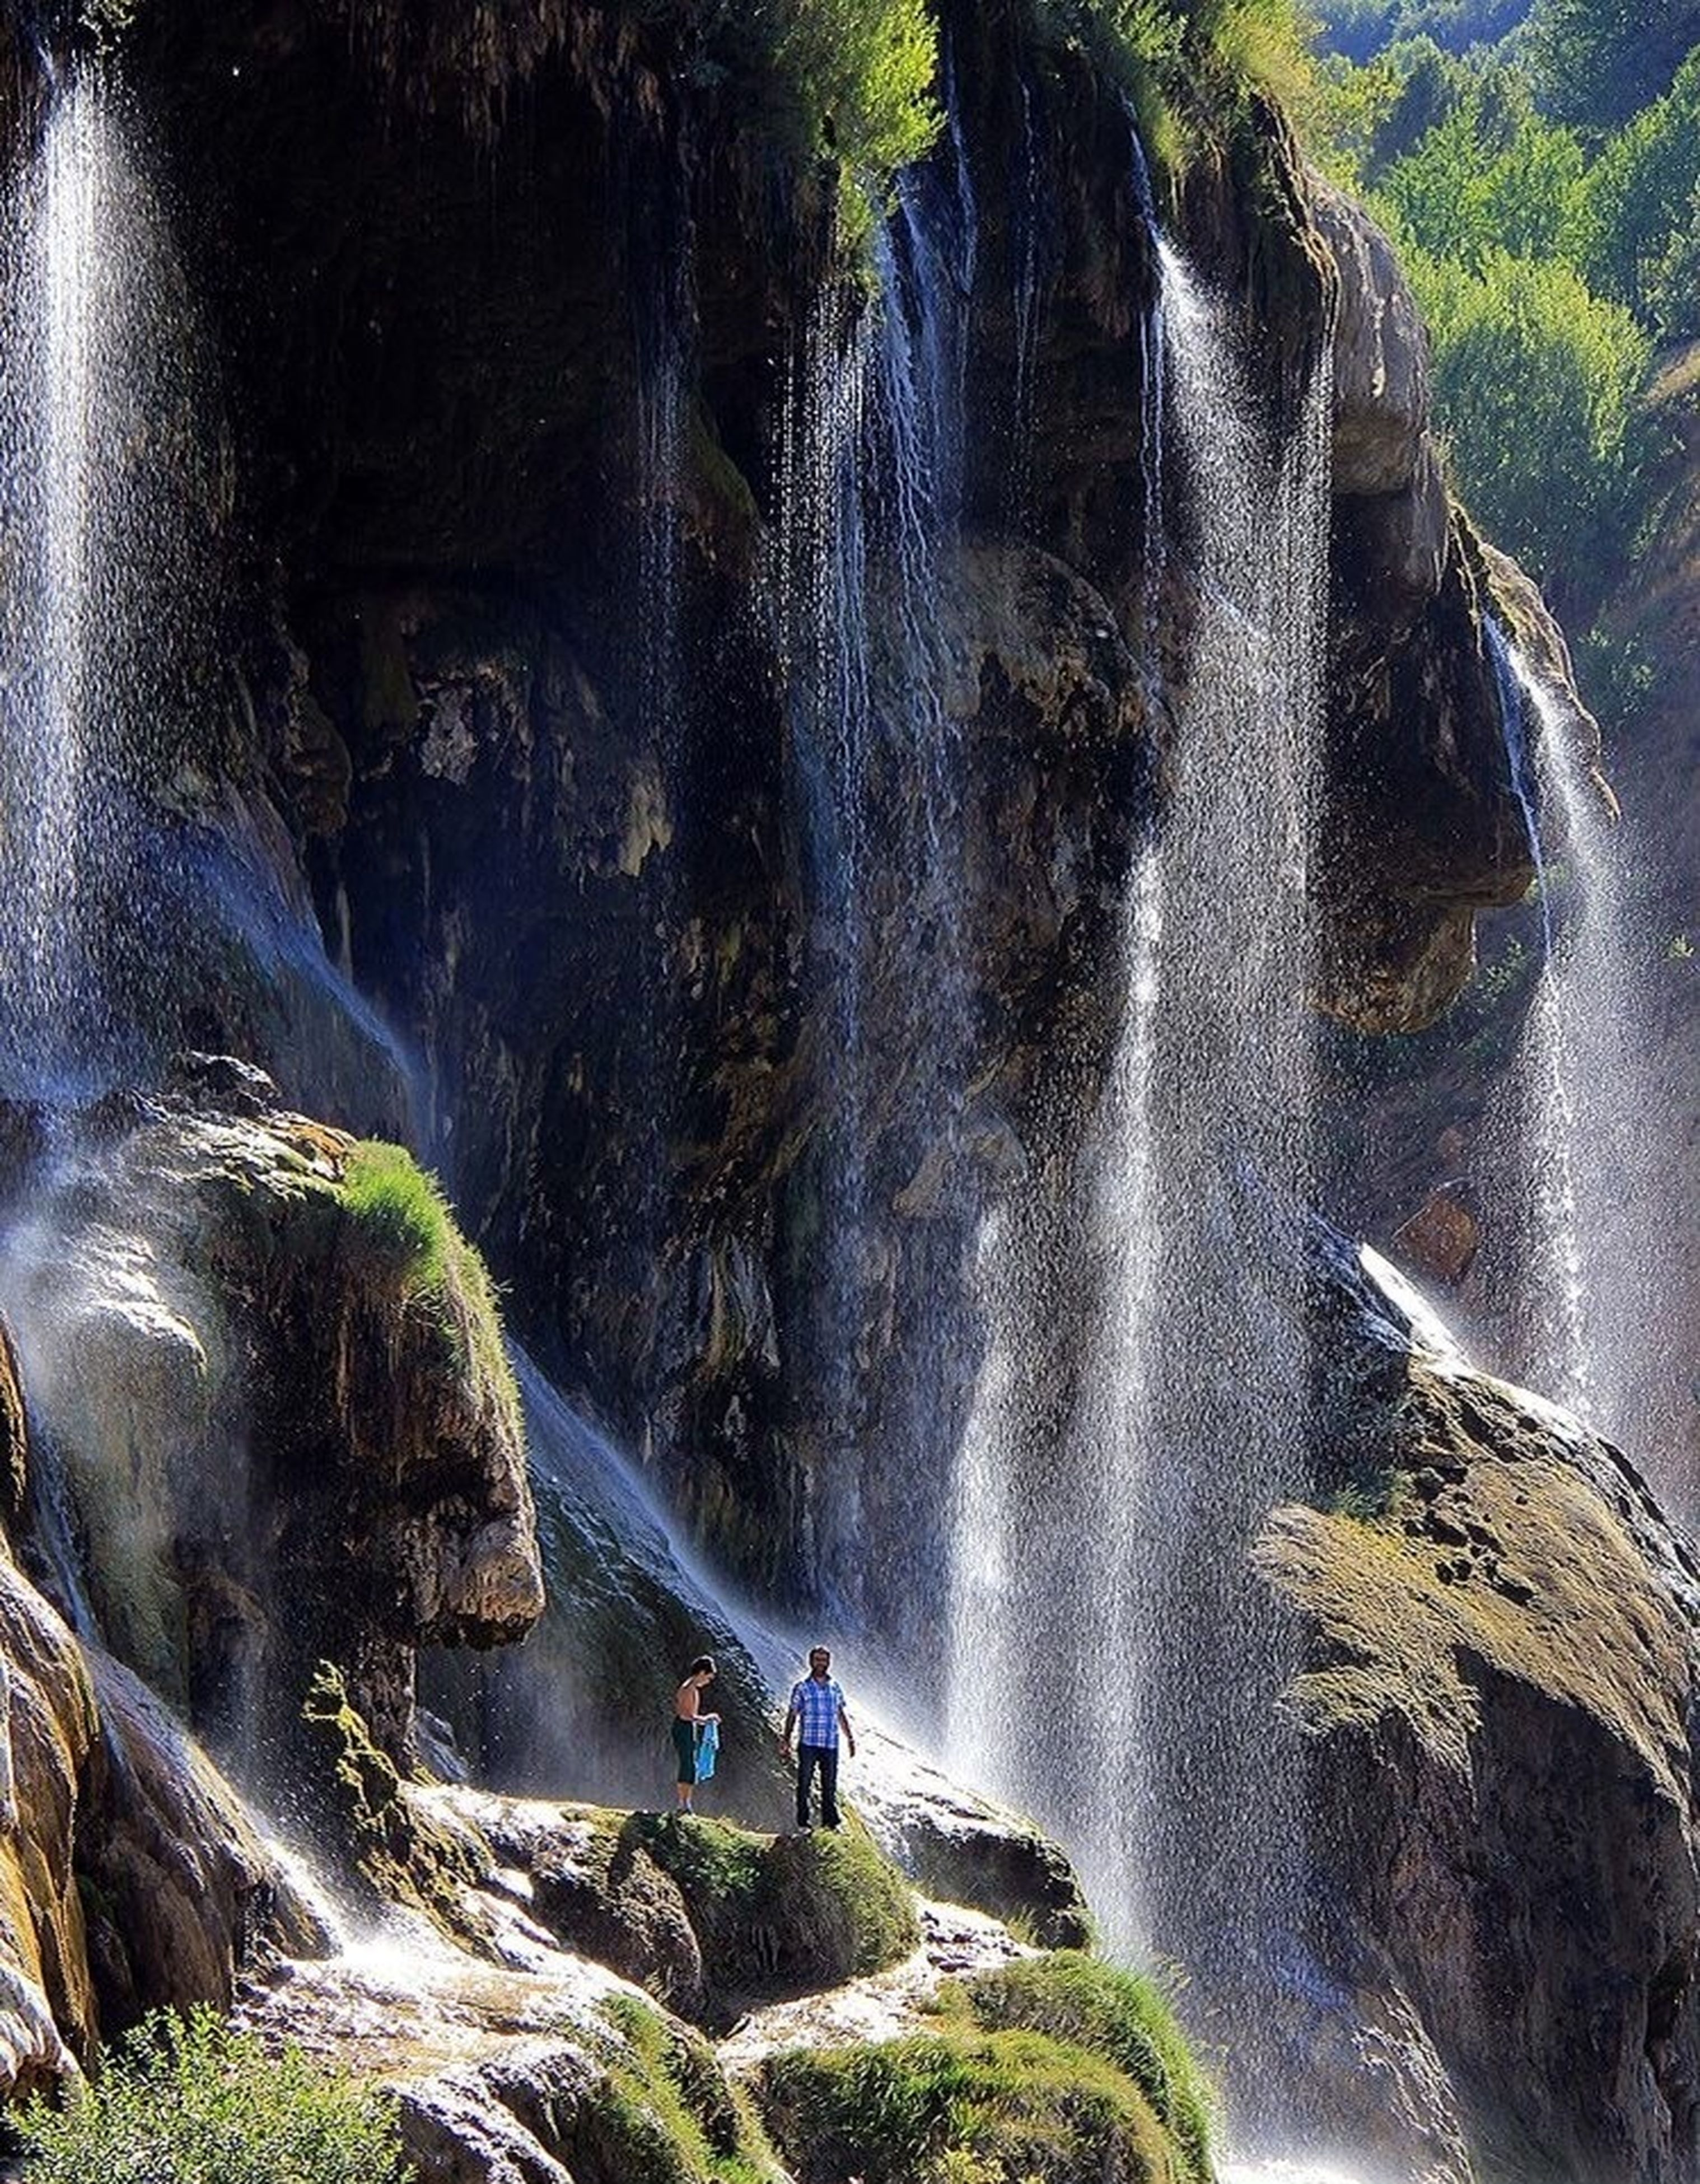 water, motion, waterfall, flowing water, flowing, beauty in nature, rock - object, river, long exposure, nature, scenics, tree, surf, splashing, travel, rock formation, transportation, high angle view, blurred motion, tourism